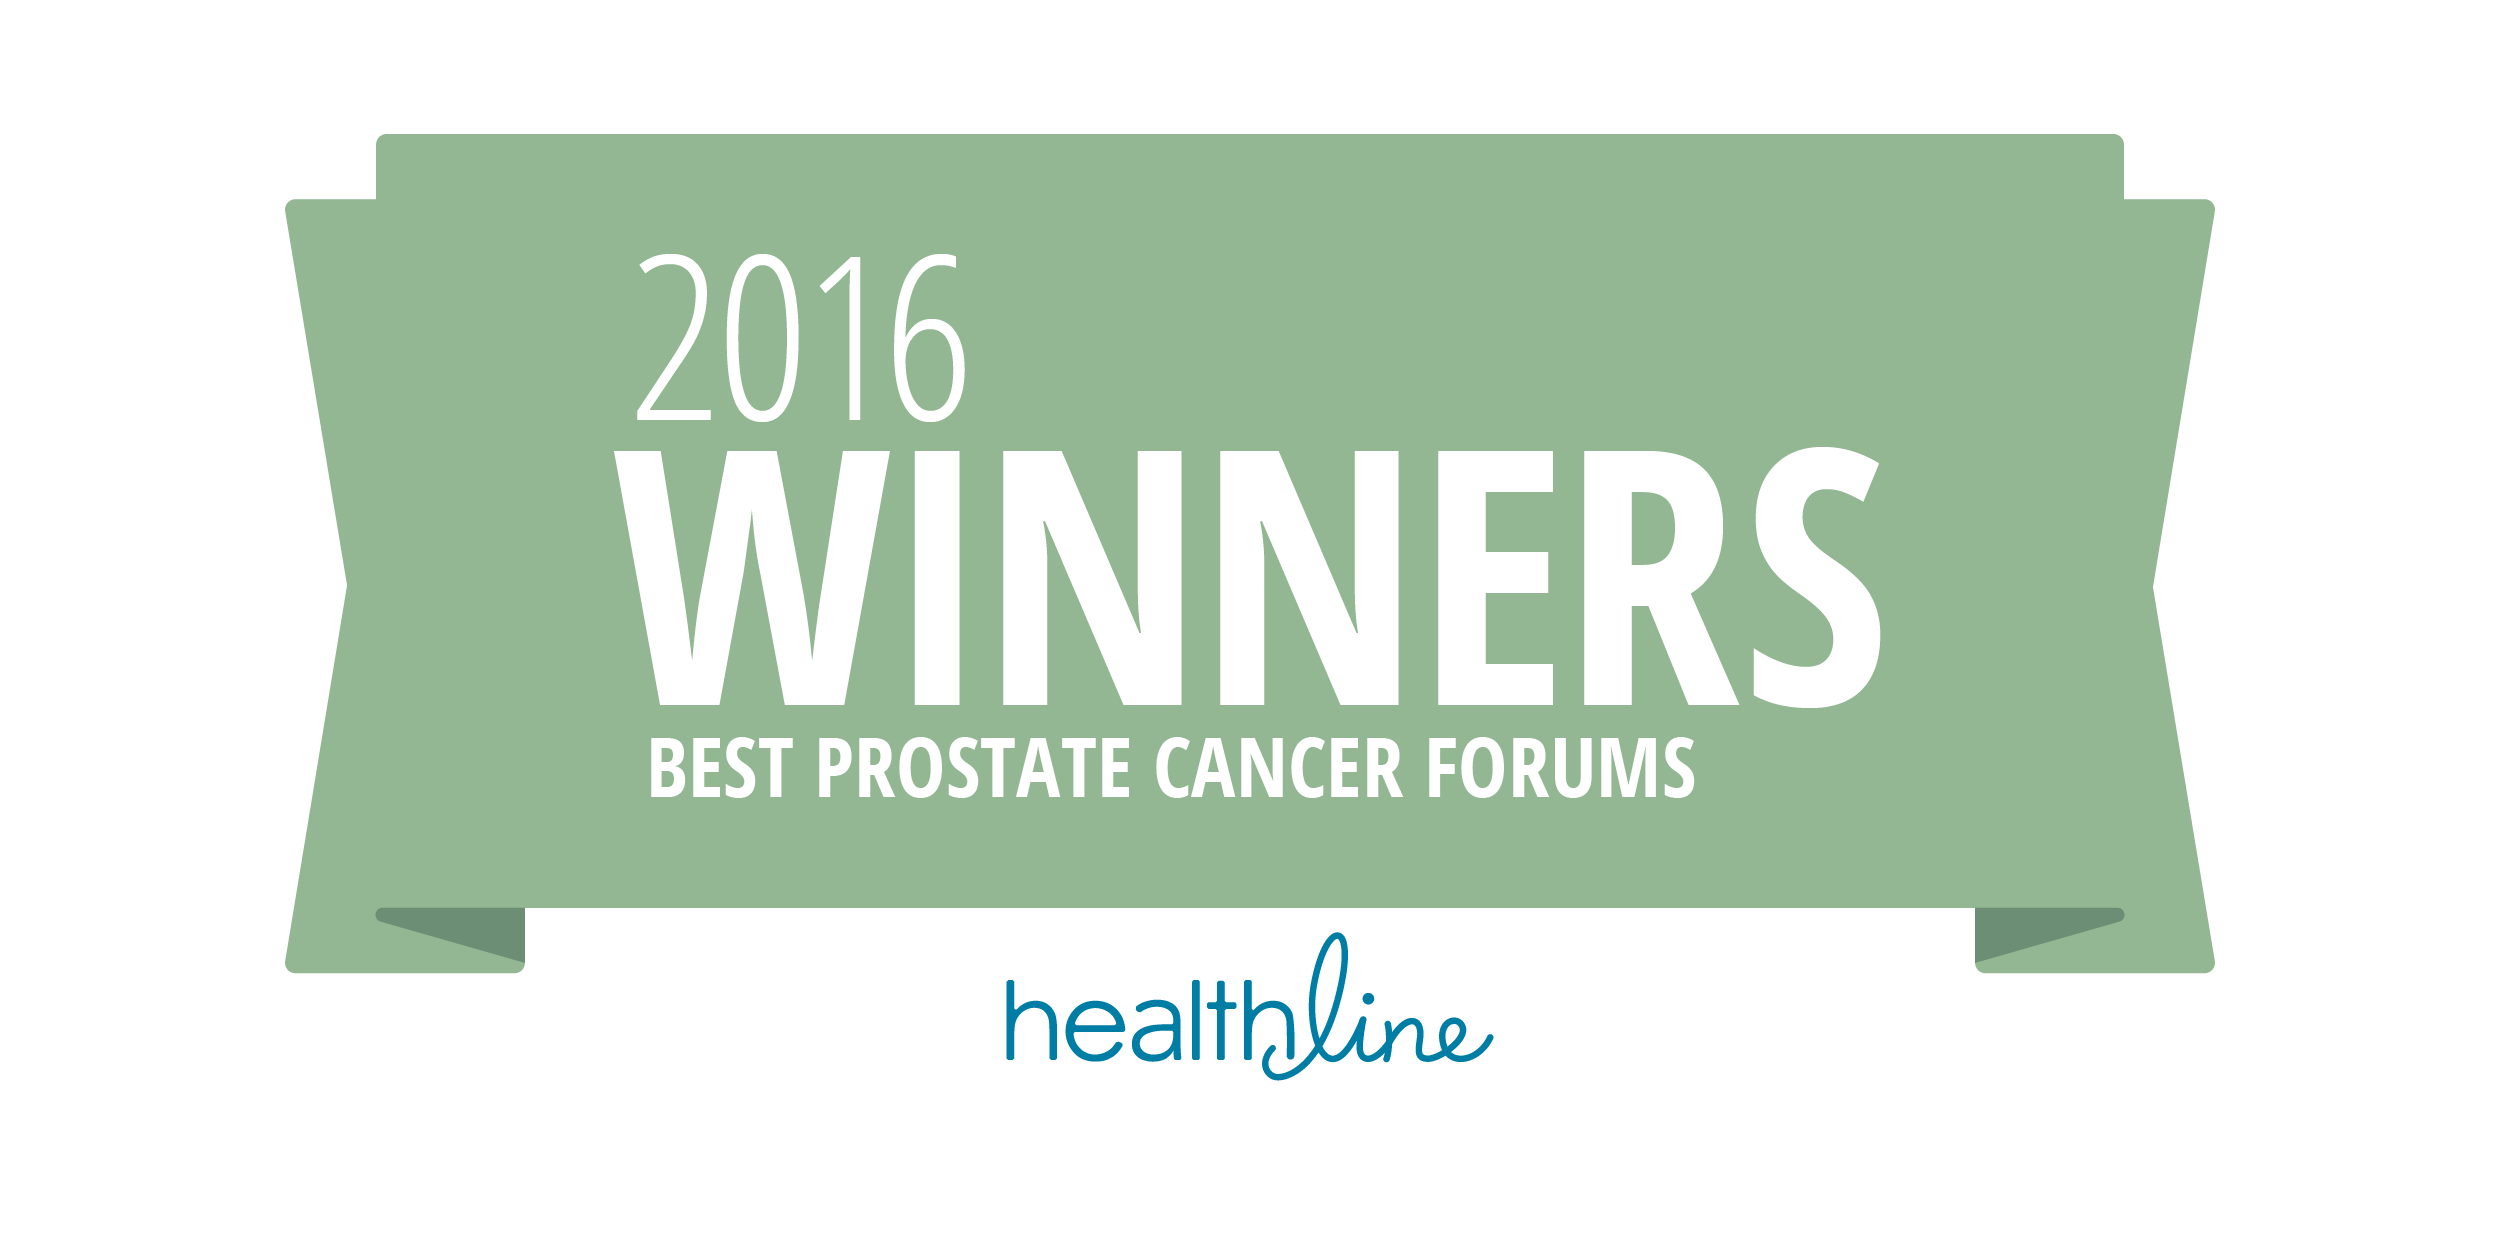 bph cancer topic Free prostate cancer papers, essays, and research papers.